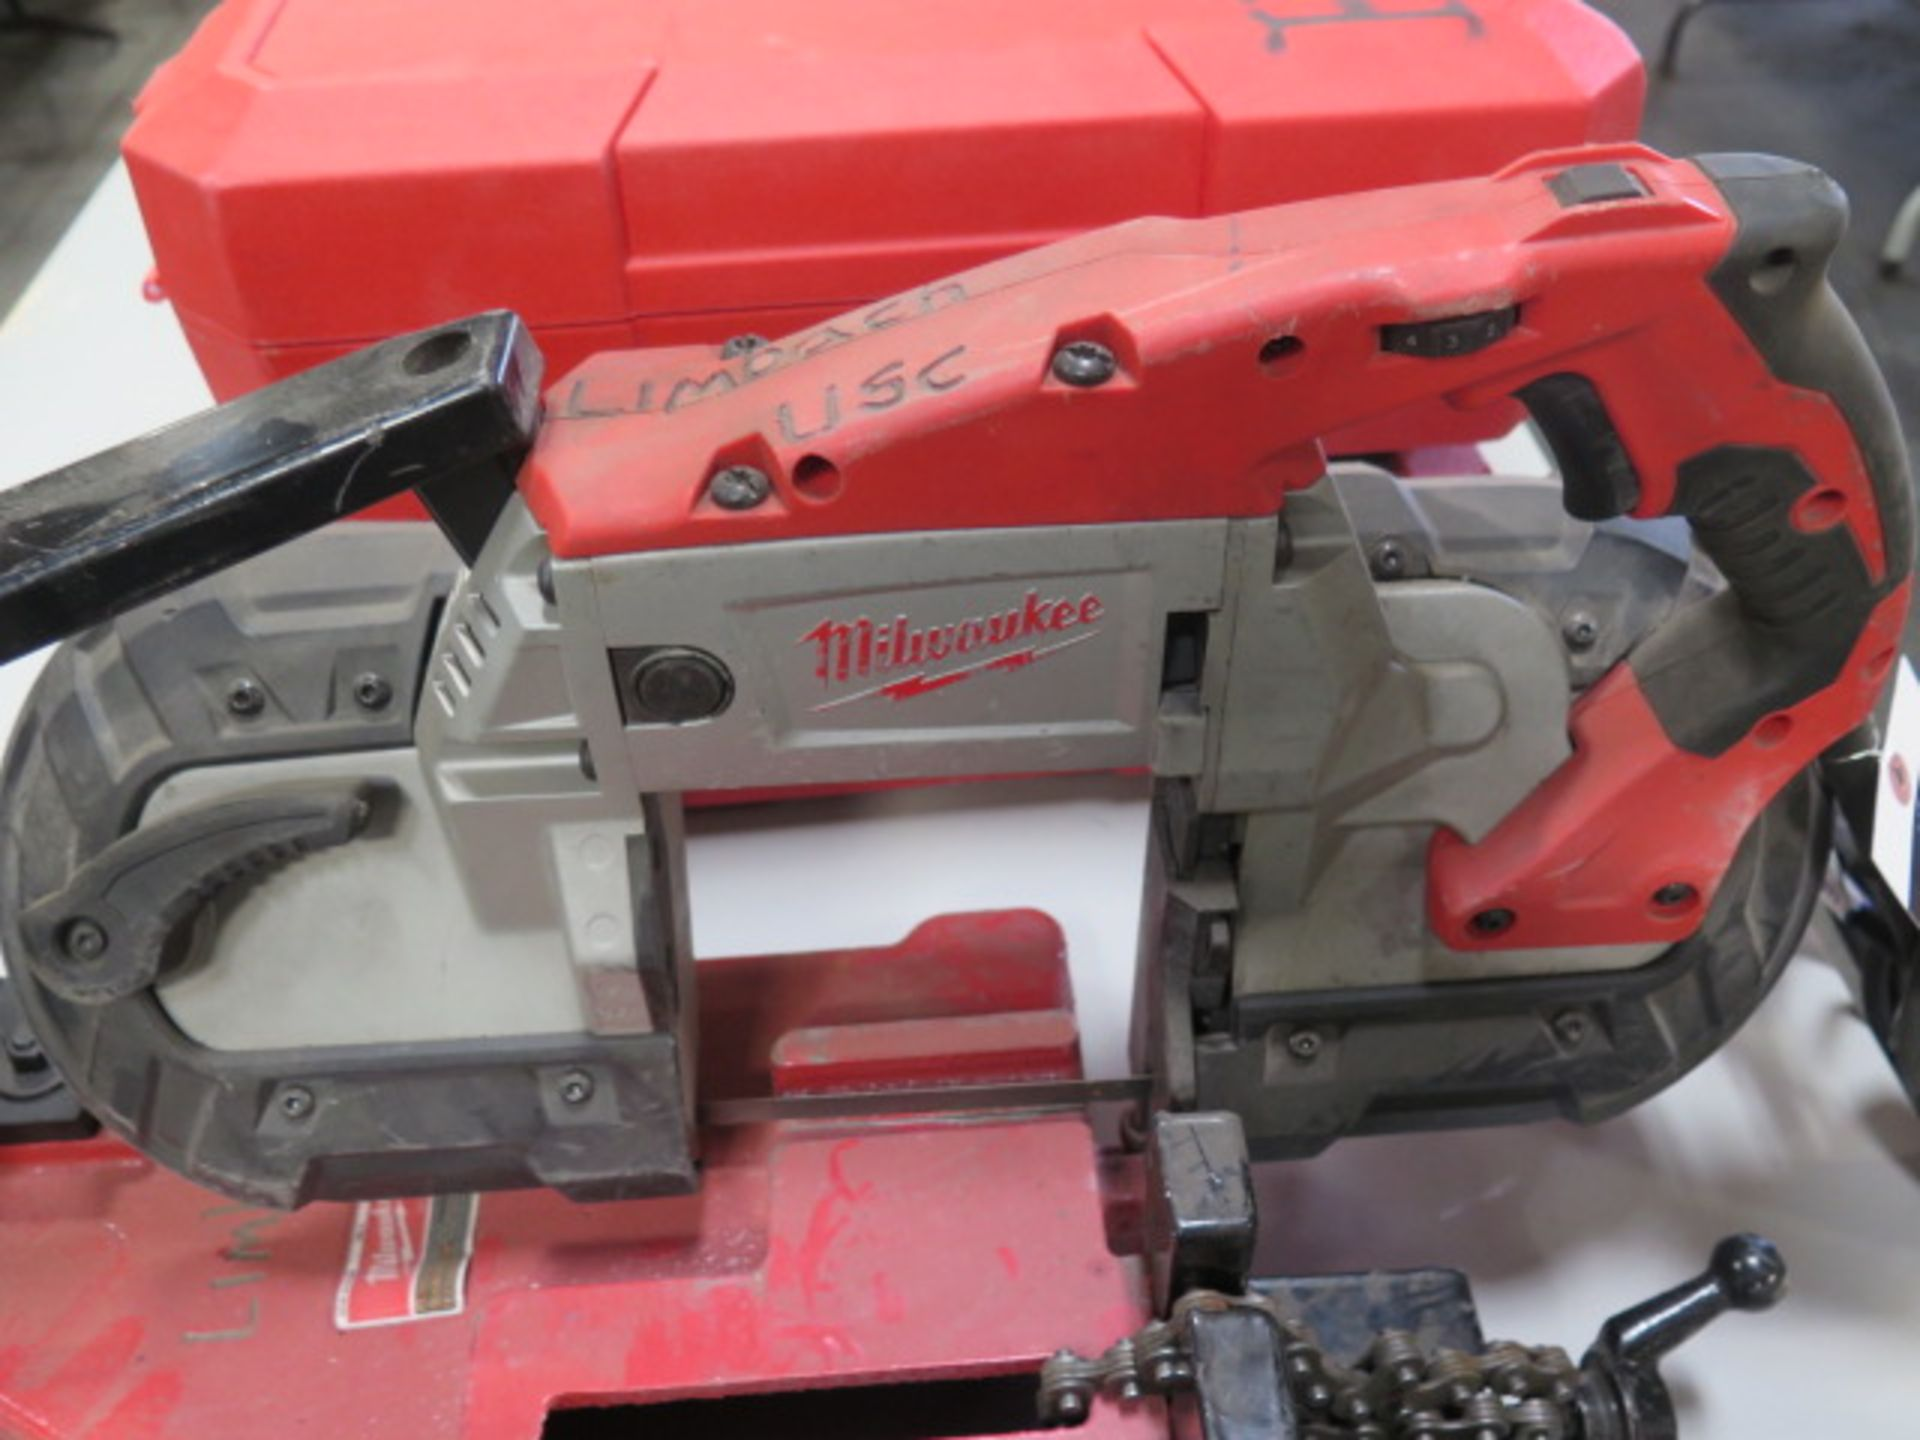 Milwaukee Deep Cut Electric Band Saw w/ Saw Stand (SOLD AS-IS - NO WARRANTY) - Image 3 of 5